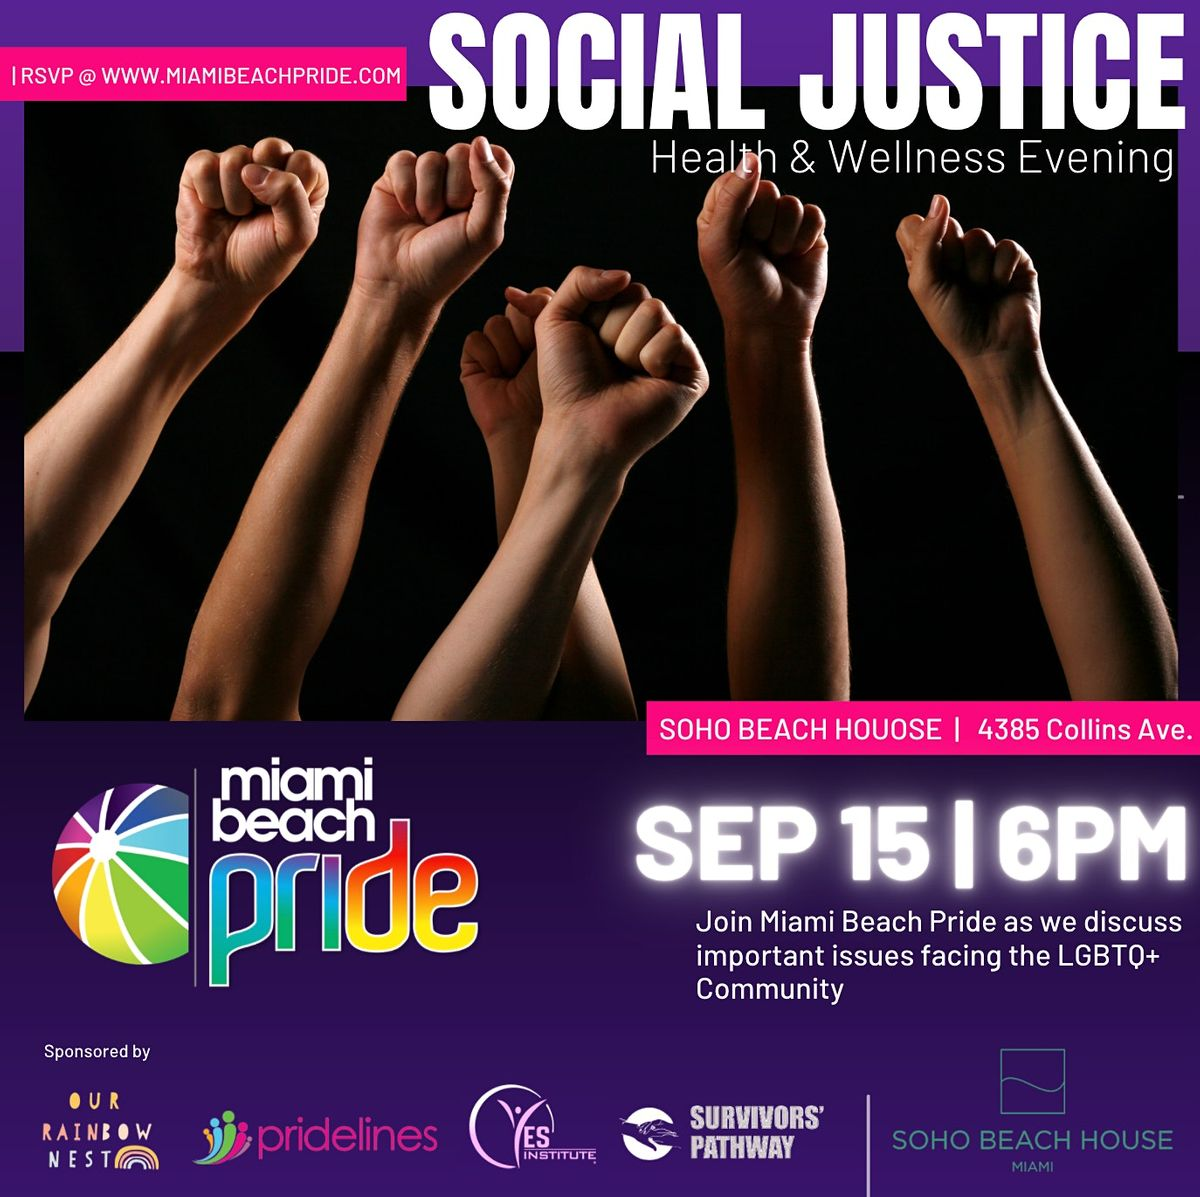 Social Justice Health & Wellness Conference